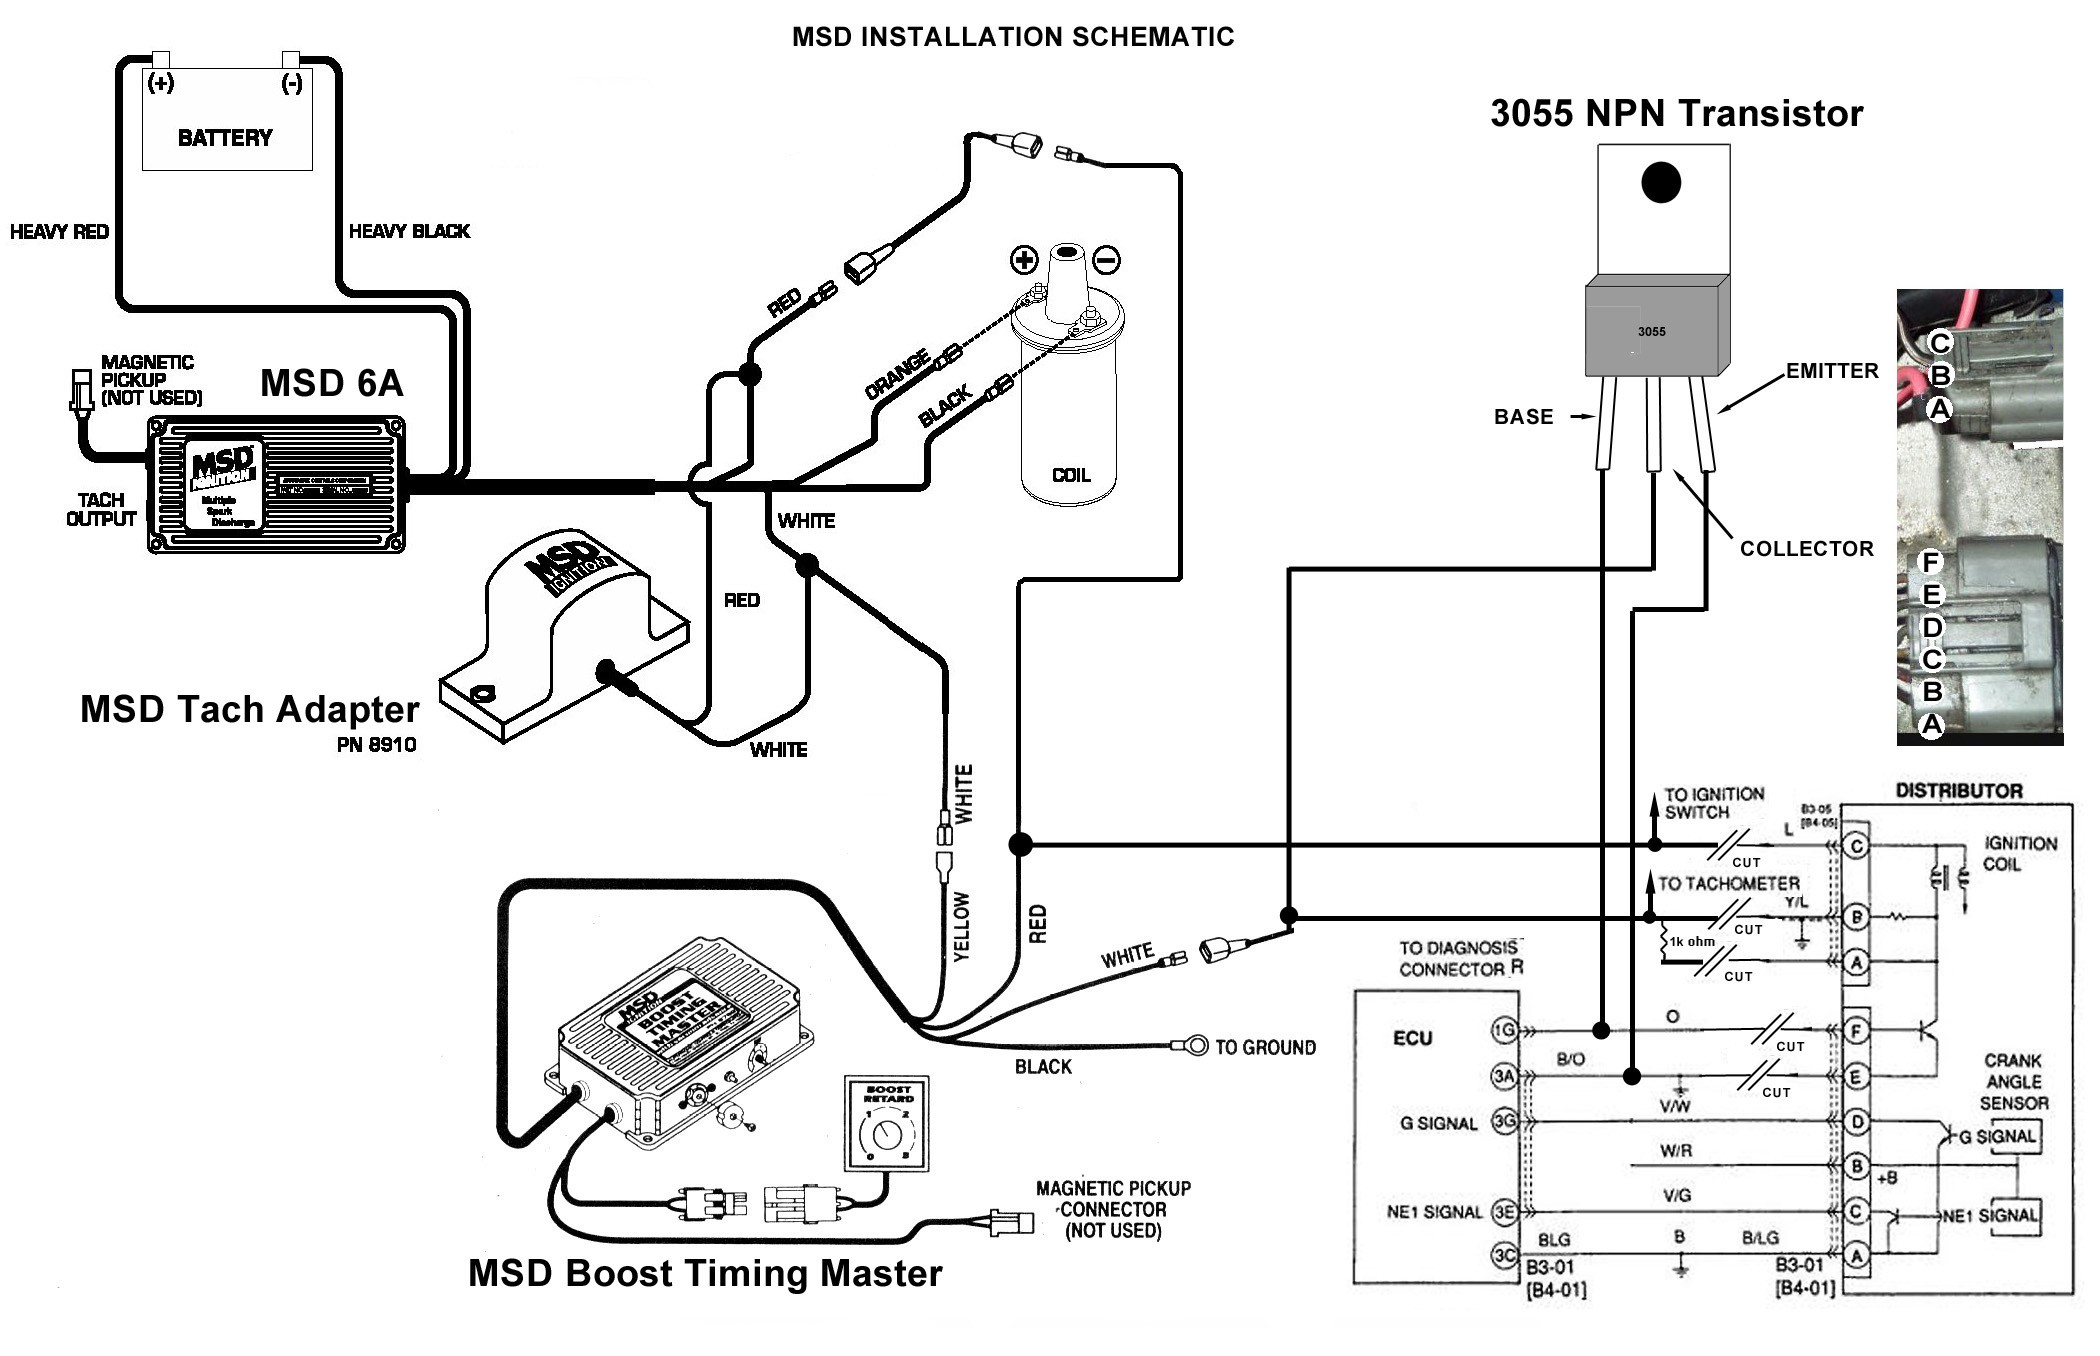 Ford Probe Battery Wiring Diagram - Wiring Diagram Replace form-pocket -  form-pocket.miramontiseo.it | Ford Probe Wiring Diagram |  | form-pocket.miramontiseo.it